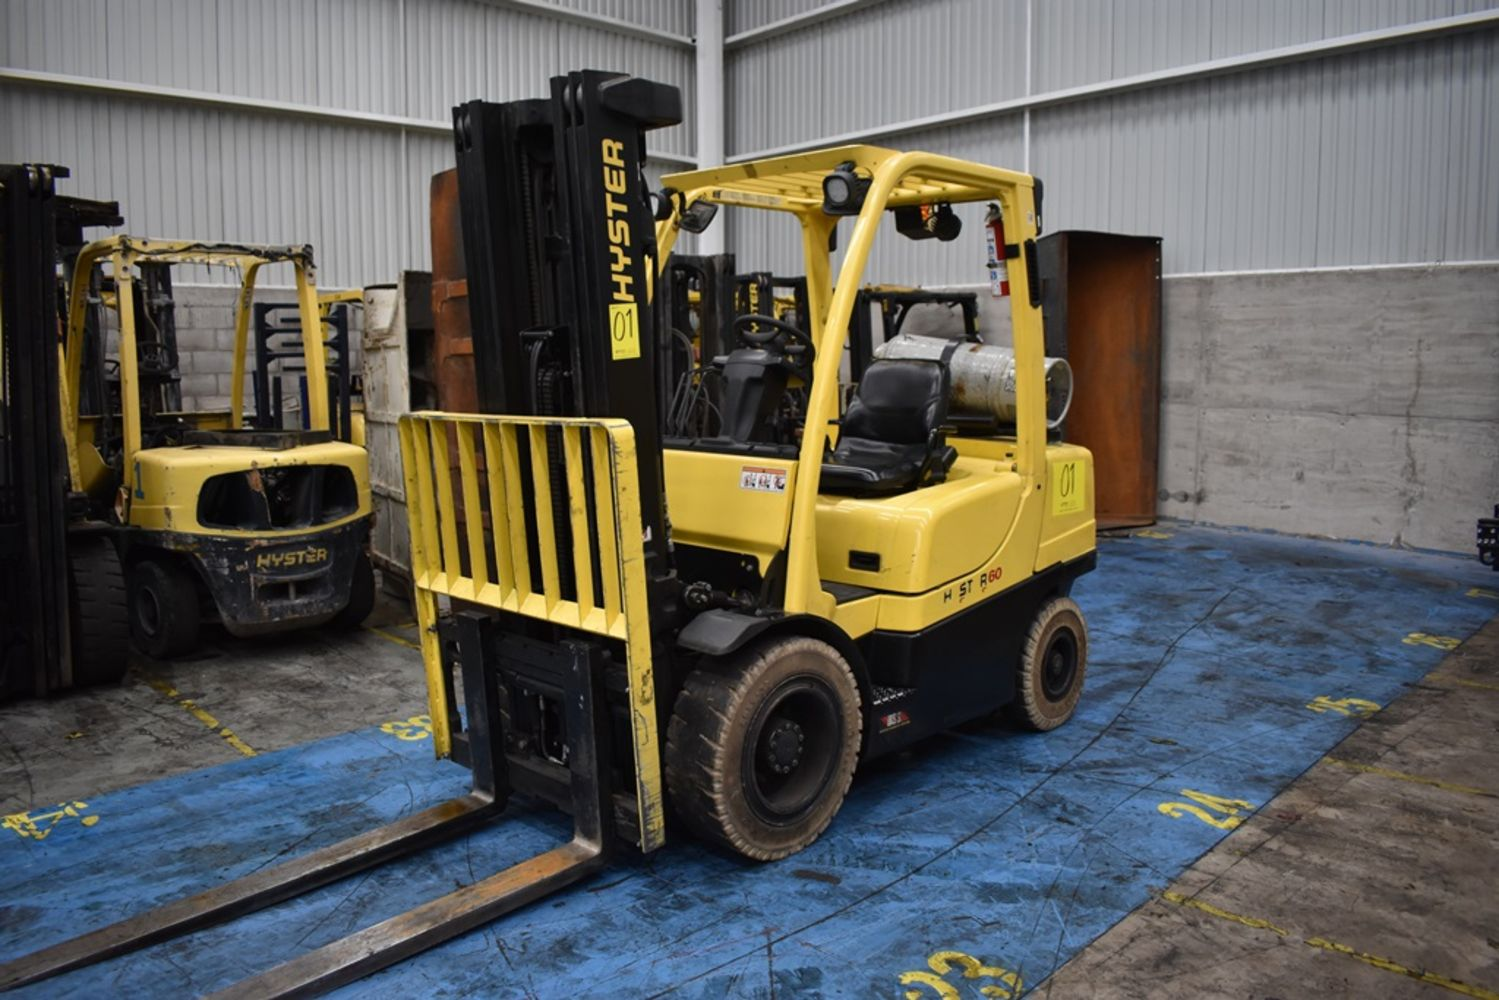 Forklifts! - More than 70 Yale and Hyster Models, Kuka Articuled Robots, complete waterjet cutting line and much more!!